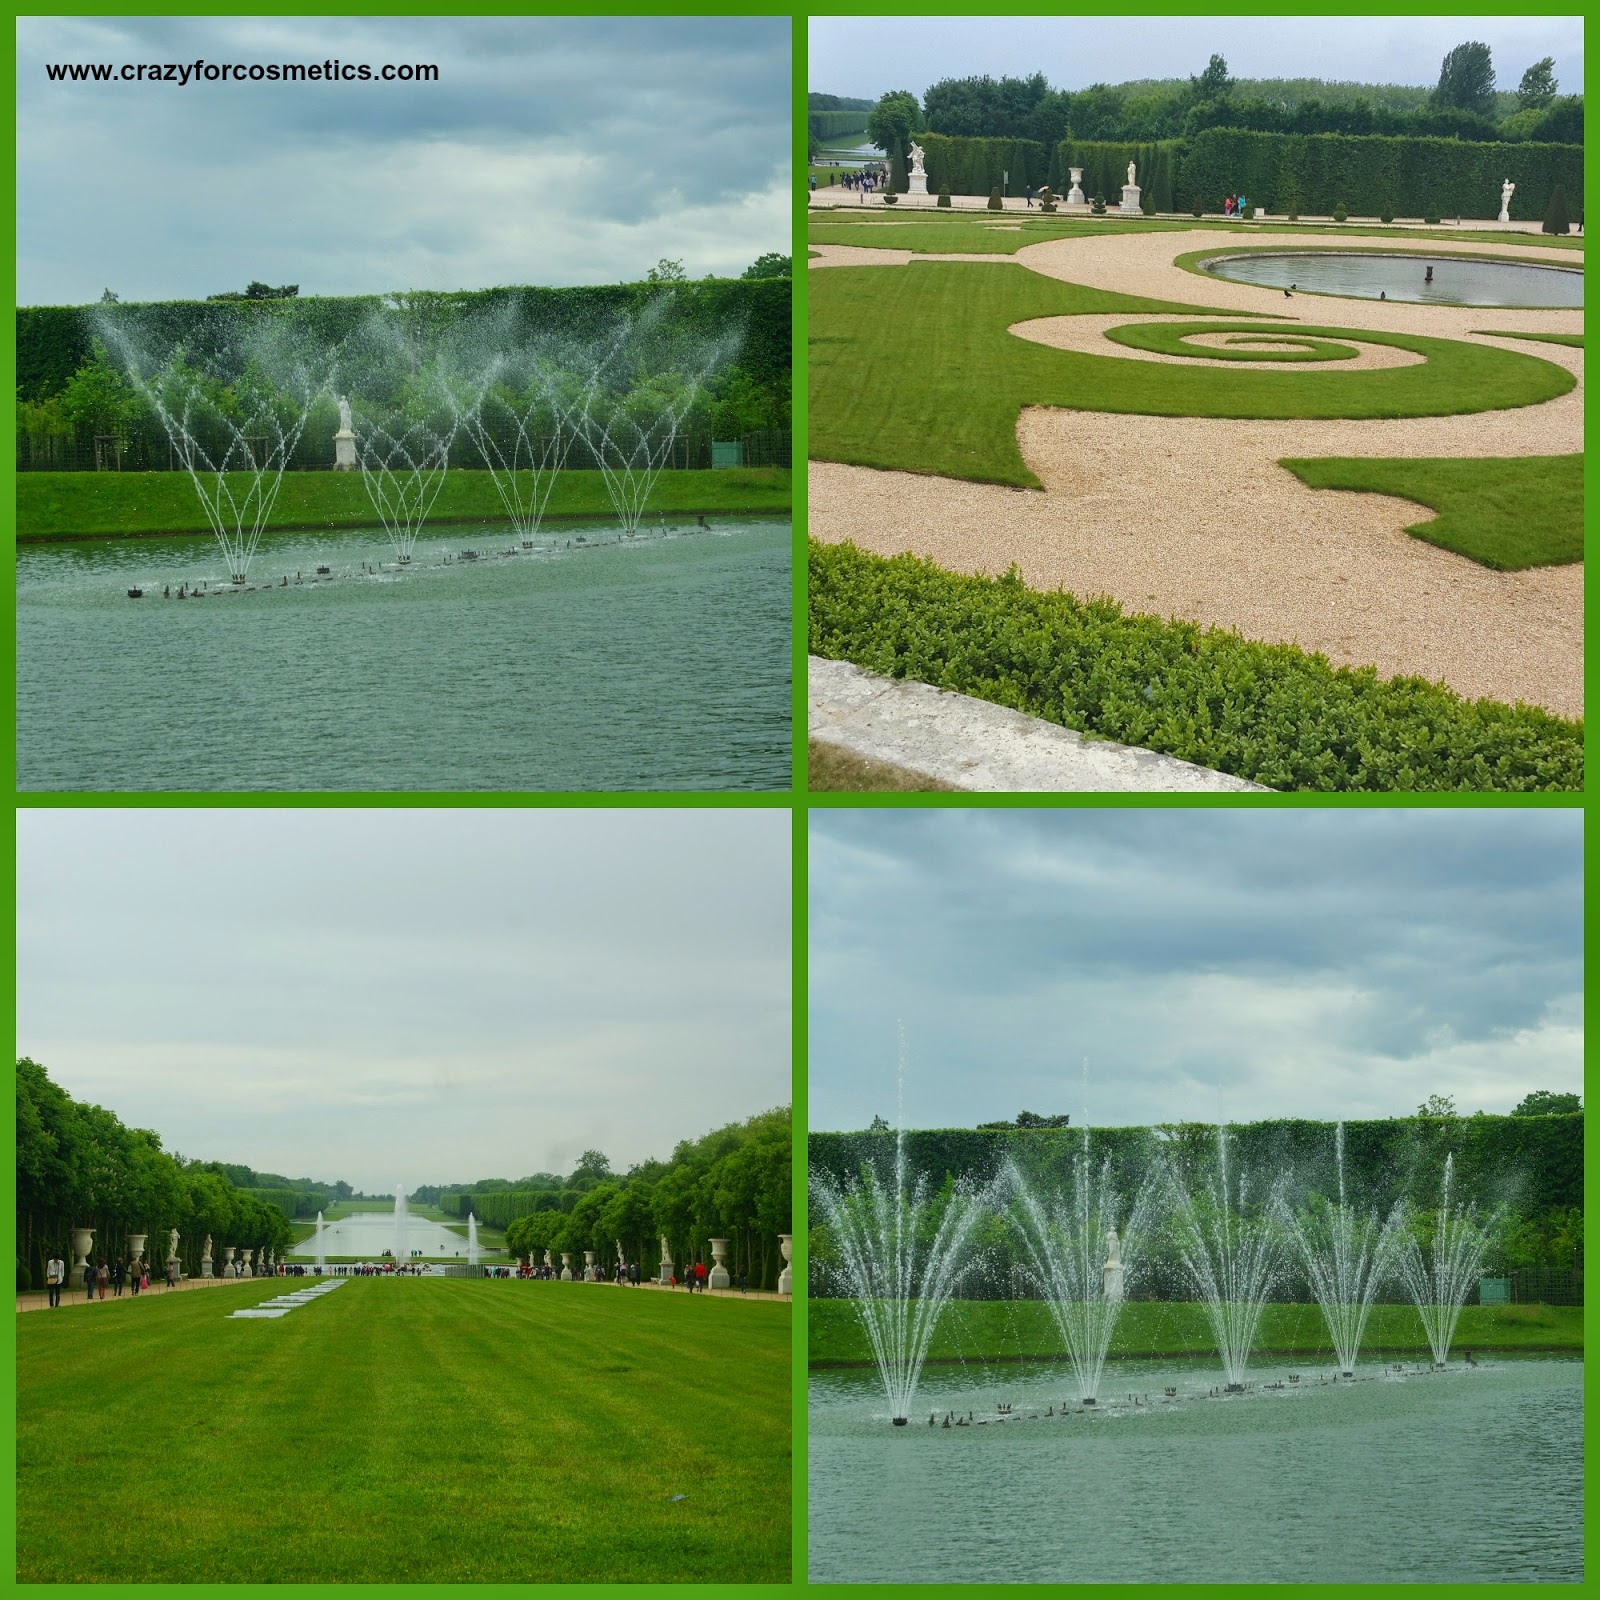 palace of versailles fountain show